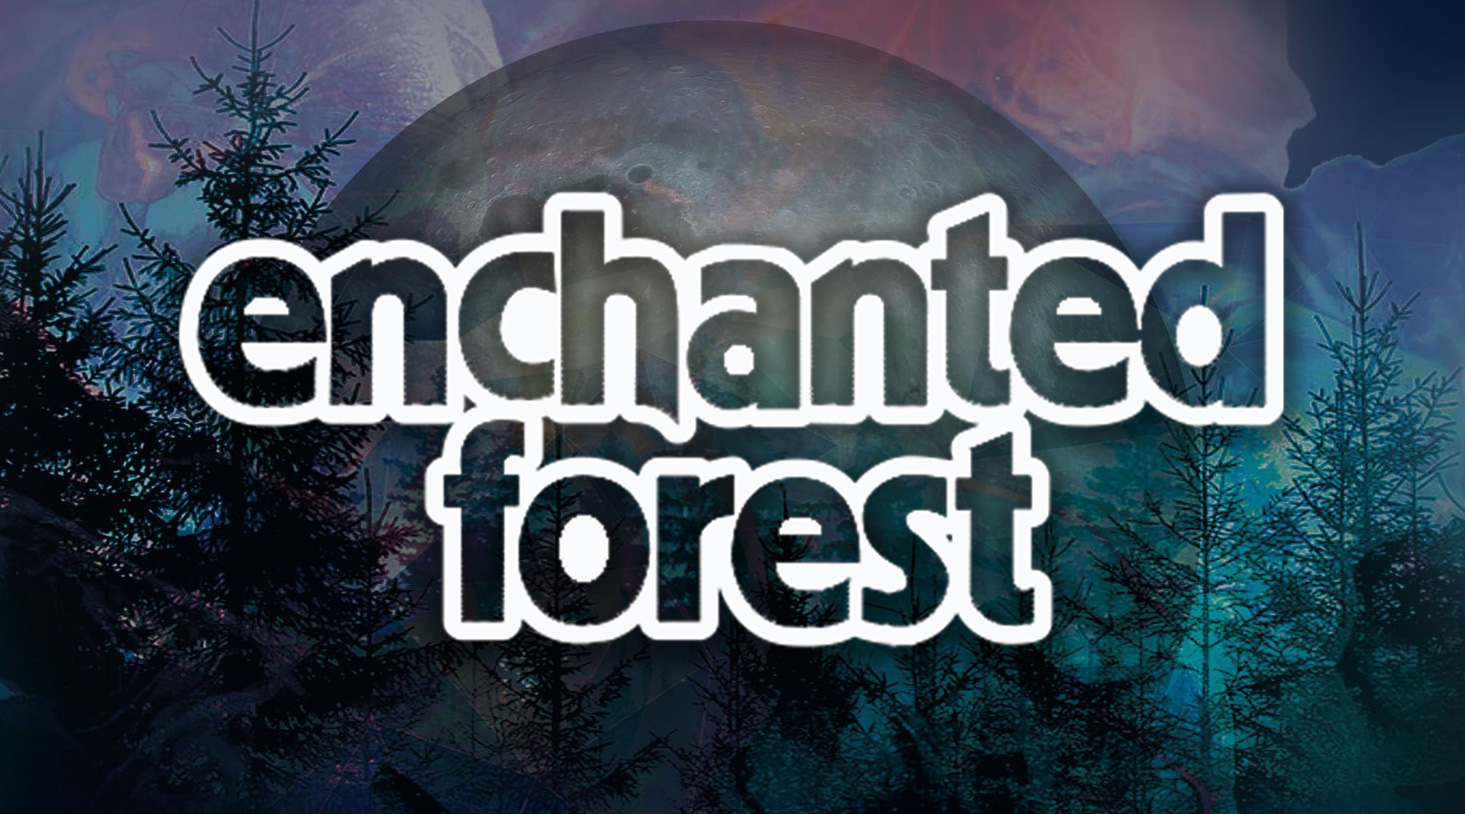 enchanted-forest-gathering-2017-featured.jpg